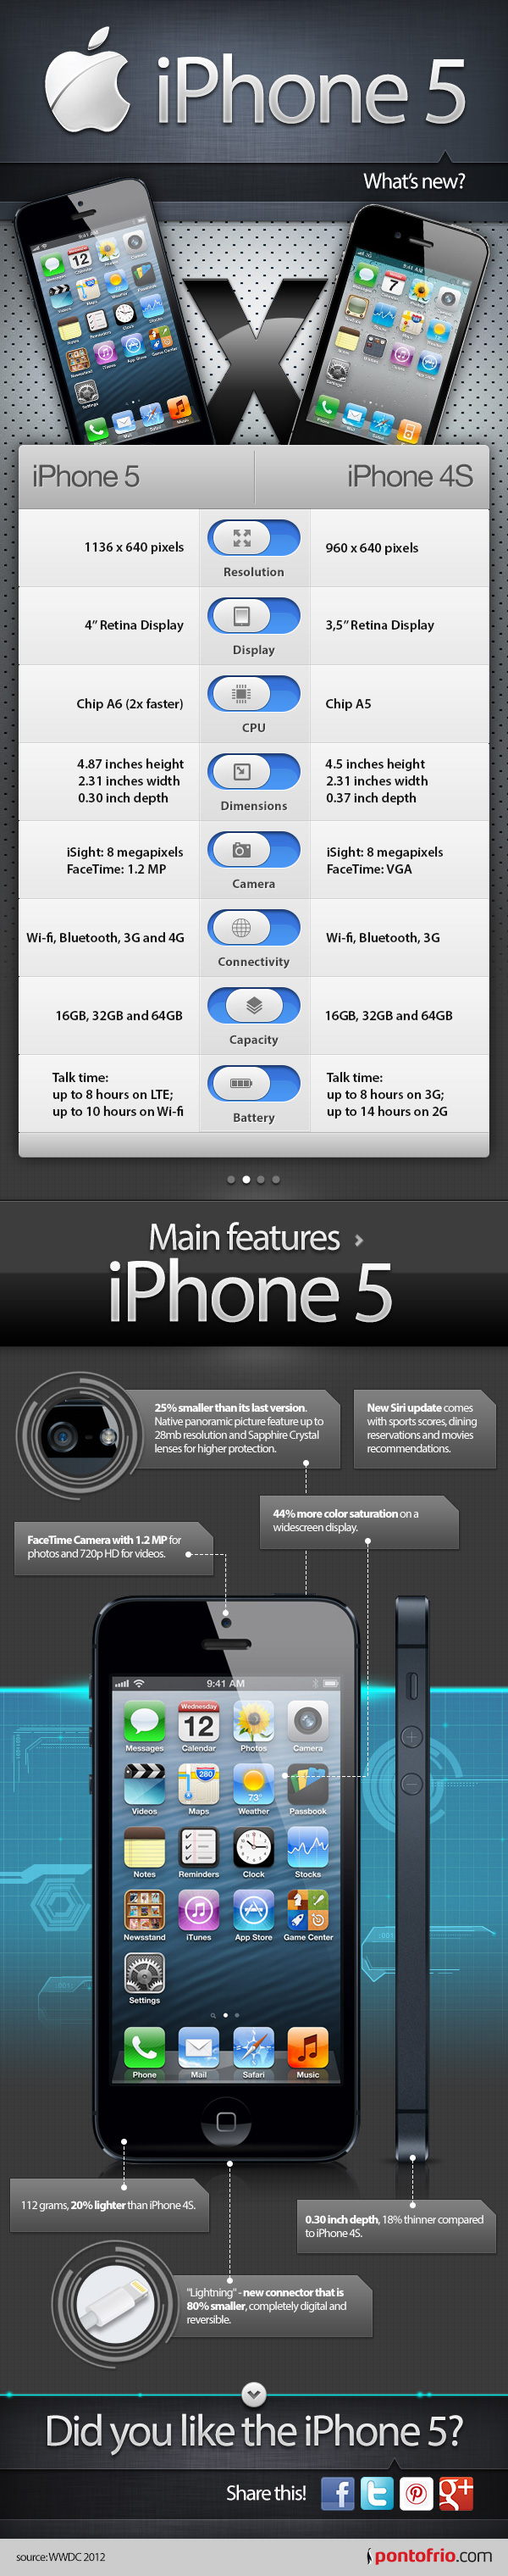 iPhone5 What's New?